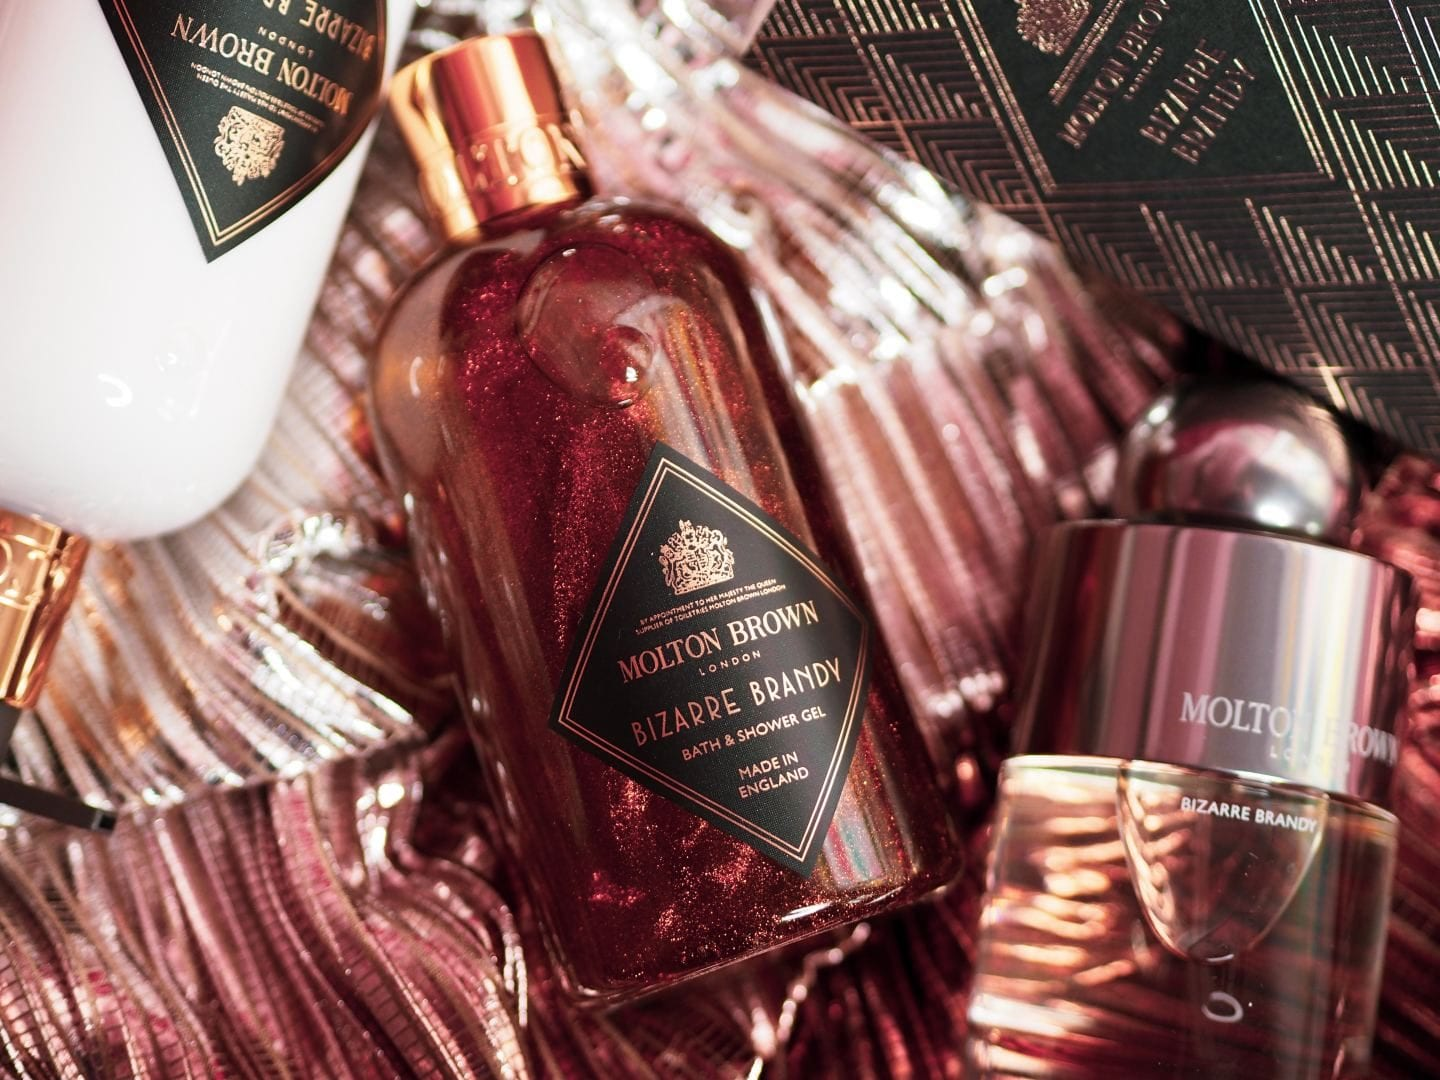 Molton Brown 'Bizarre Brandy' Limited Edition Christmas Collection shower gel